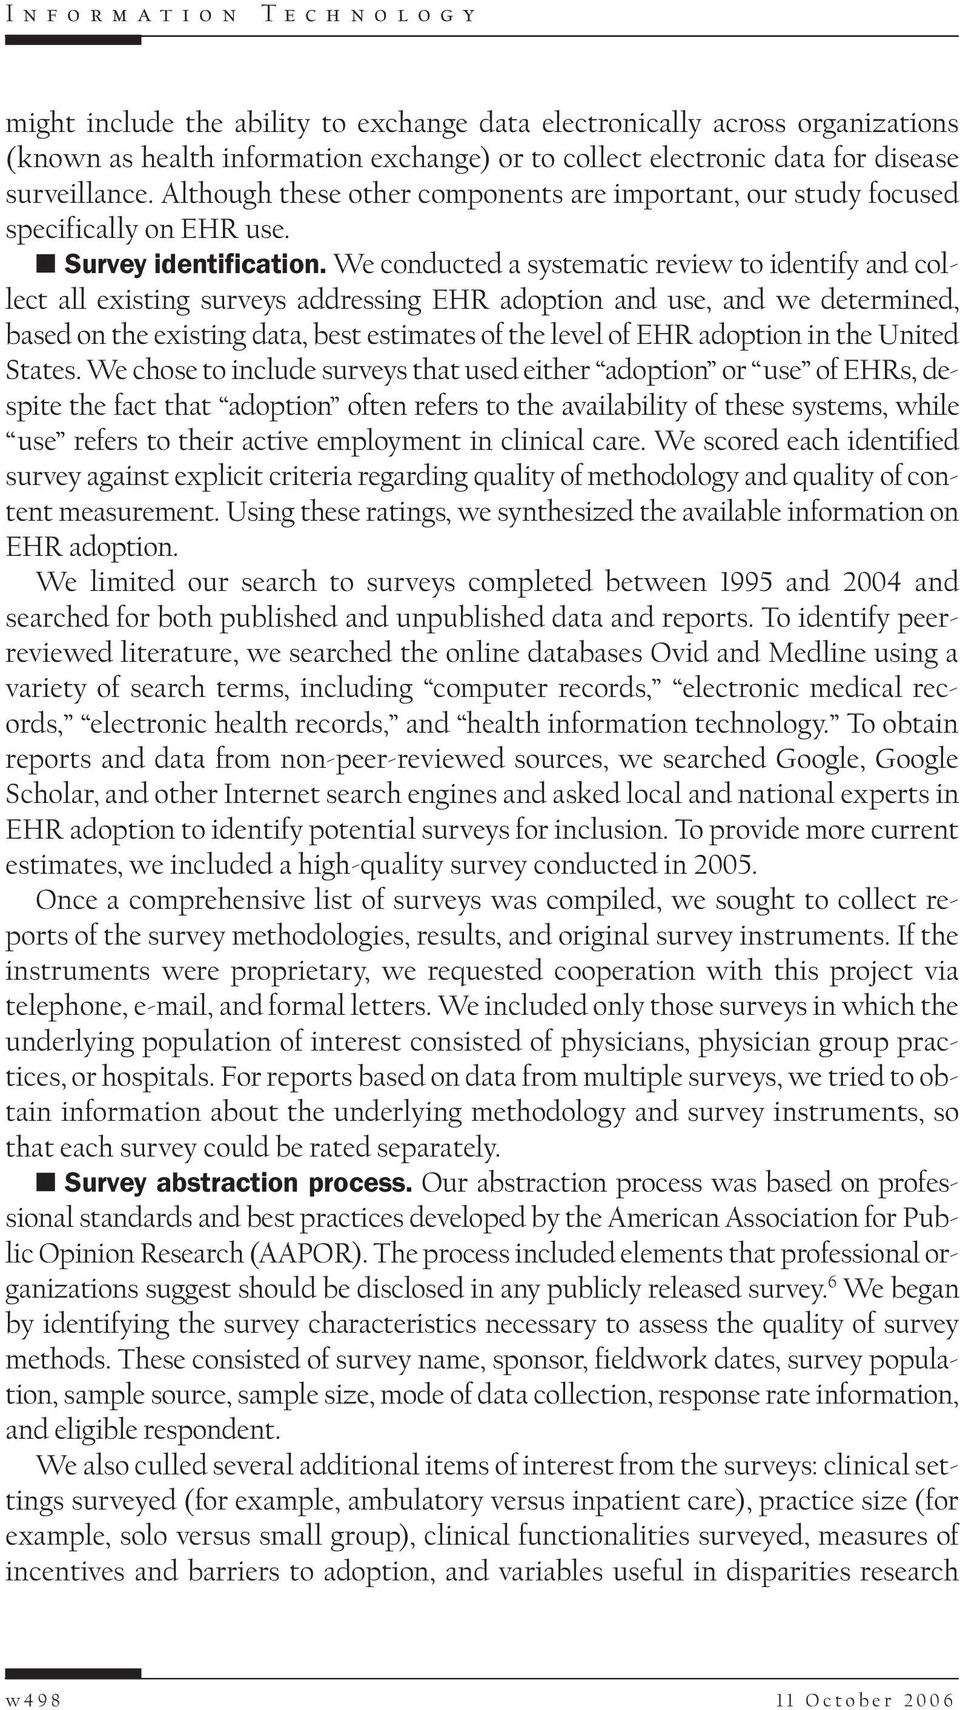 We conducted a systematic review to identify and collect all existing surveys addressing EHR adoption and use, and we determined, based on the existing data, best estimates of the level of EHR